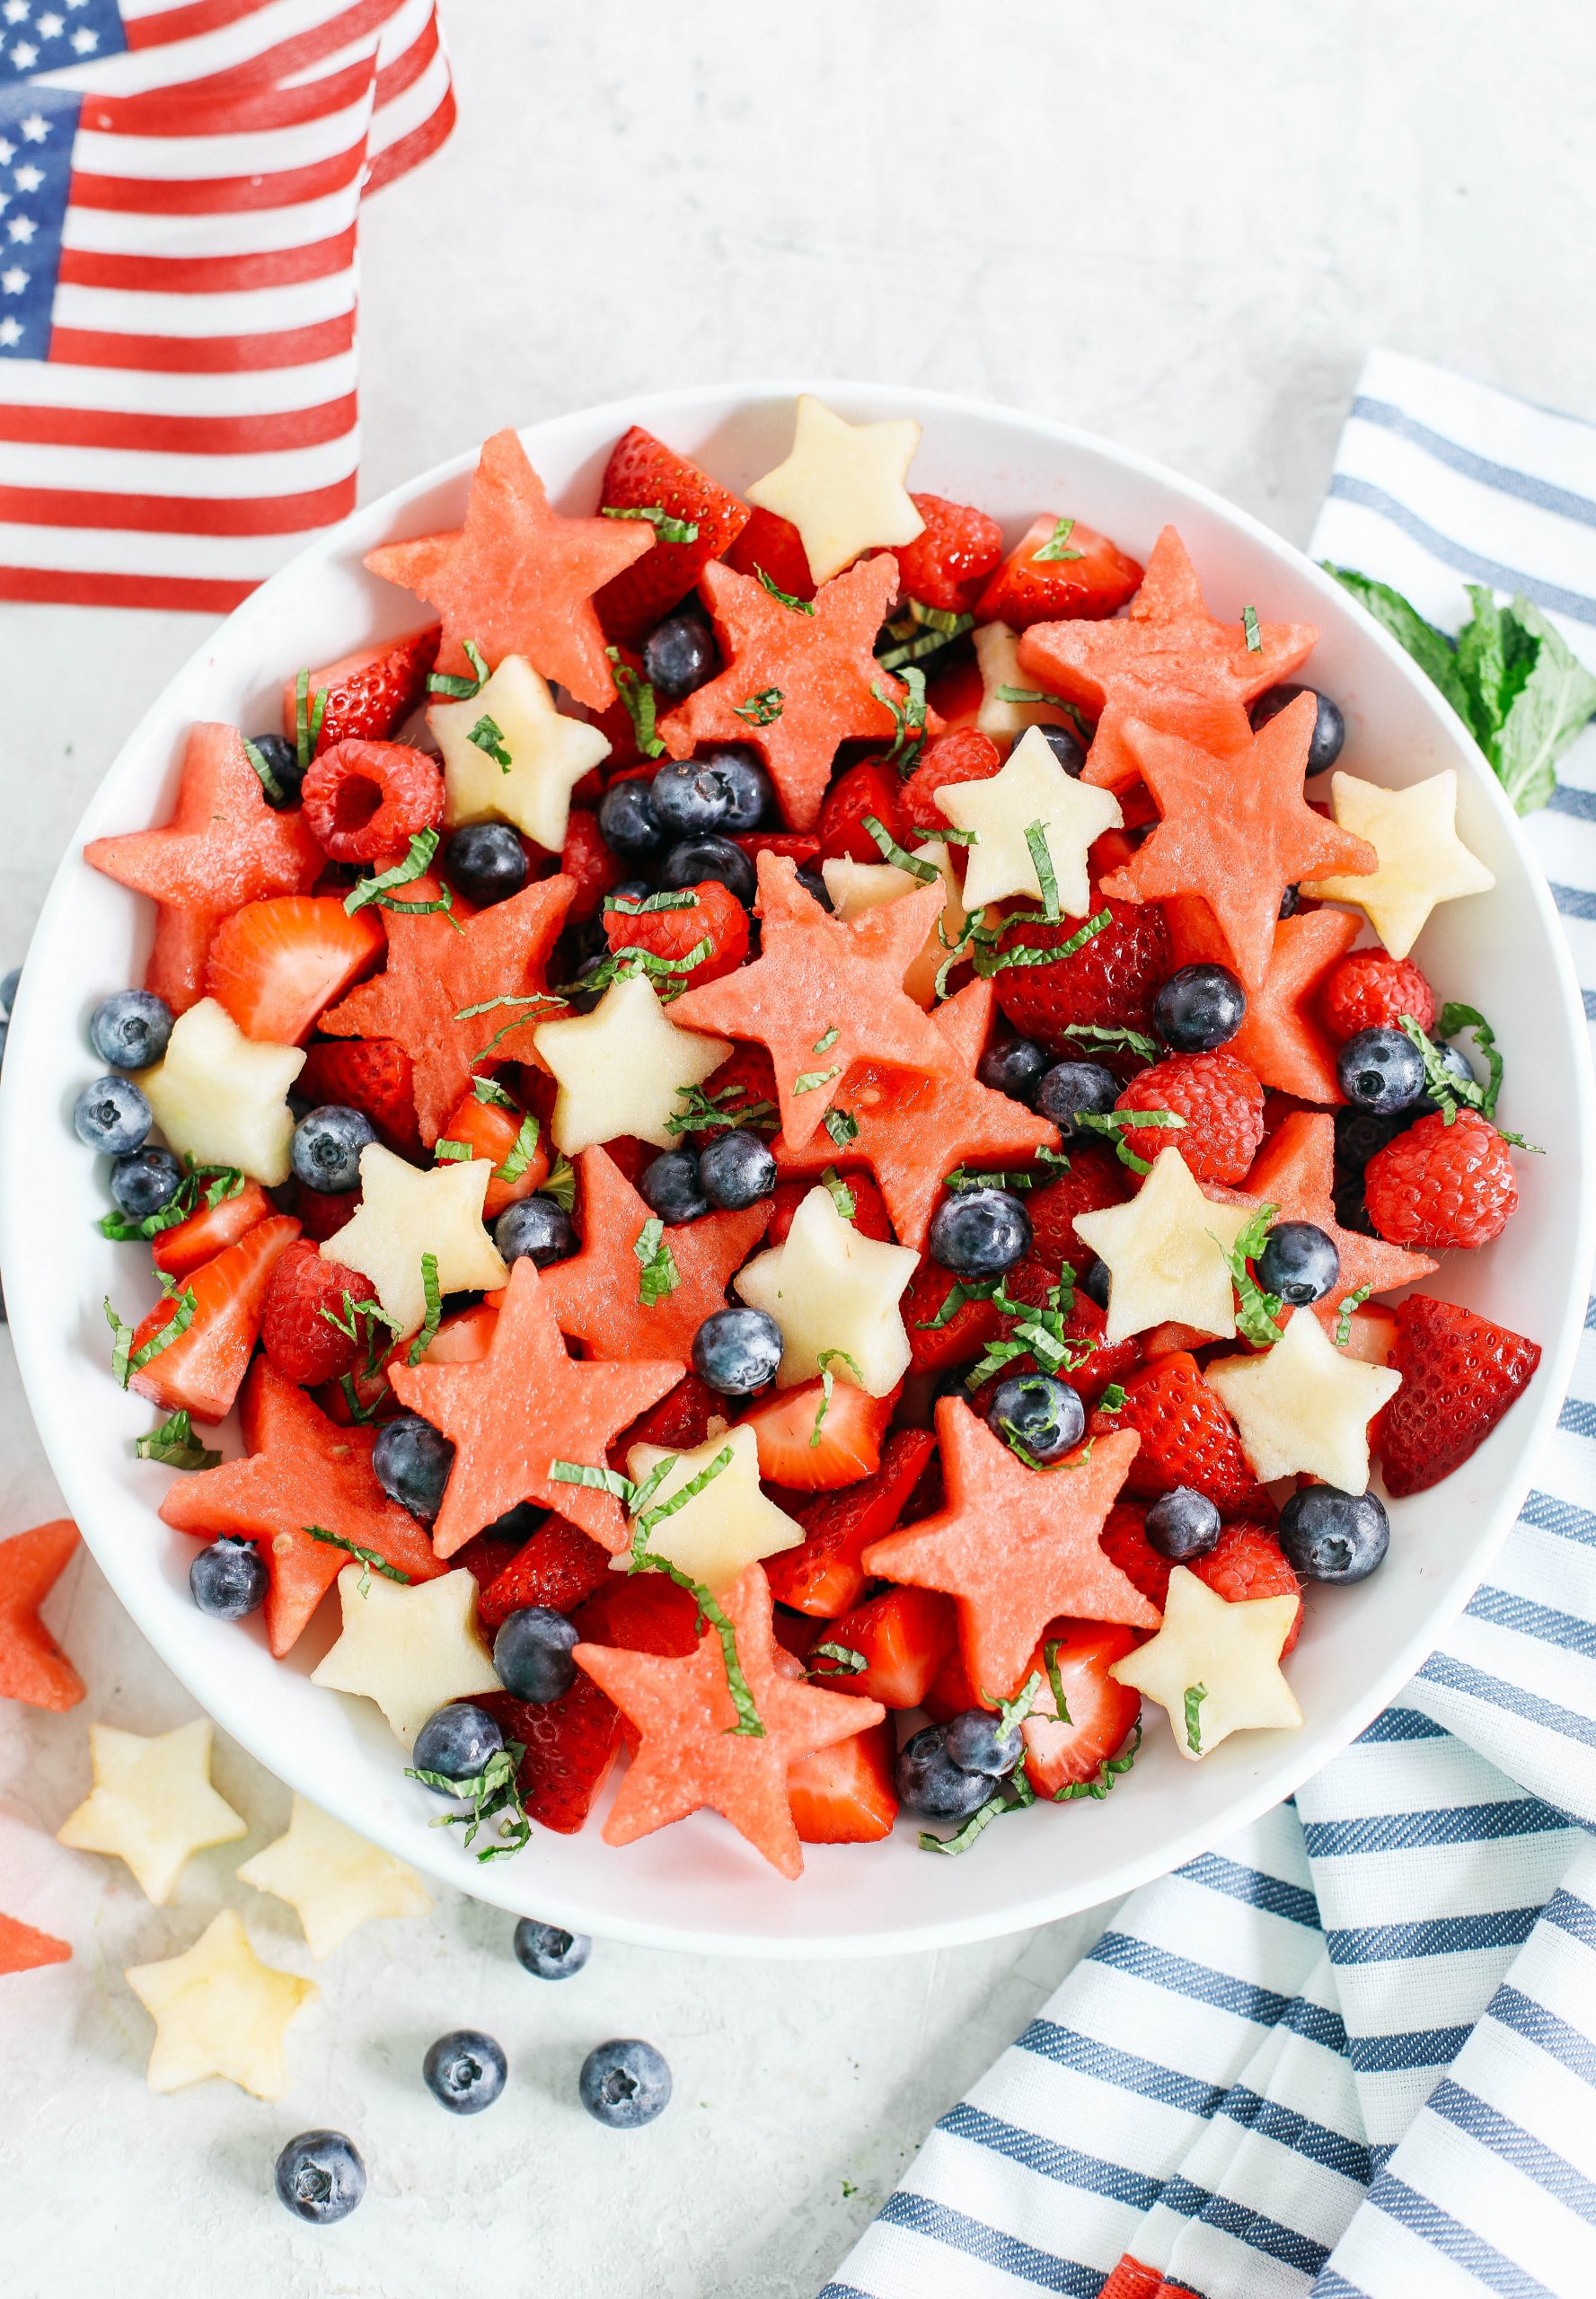 Kick off the 4th of July weekend with this fresh and festive Red, White and Blueberry Fruit Salad packed juicy watermelon, crisp apples and delicious berries all tossed together in a honey-citrus dressing!